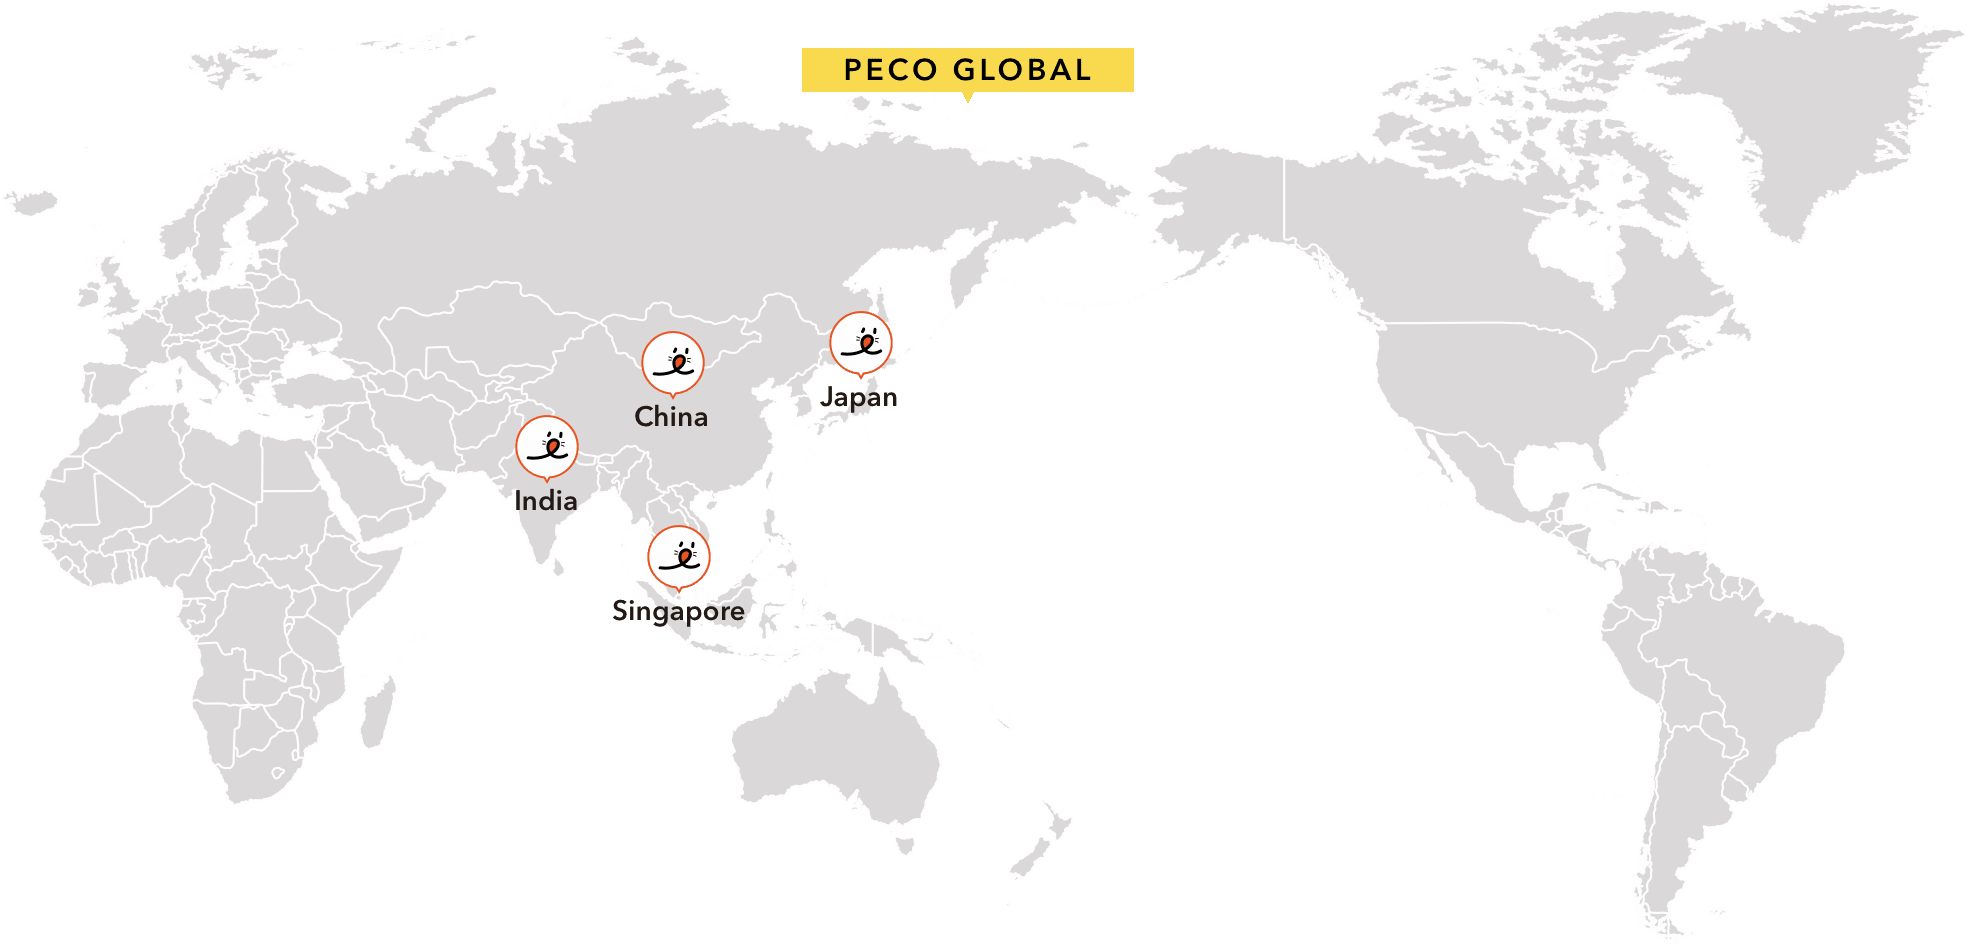 PECO GLOBAL MAP